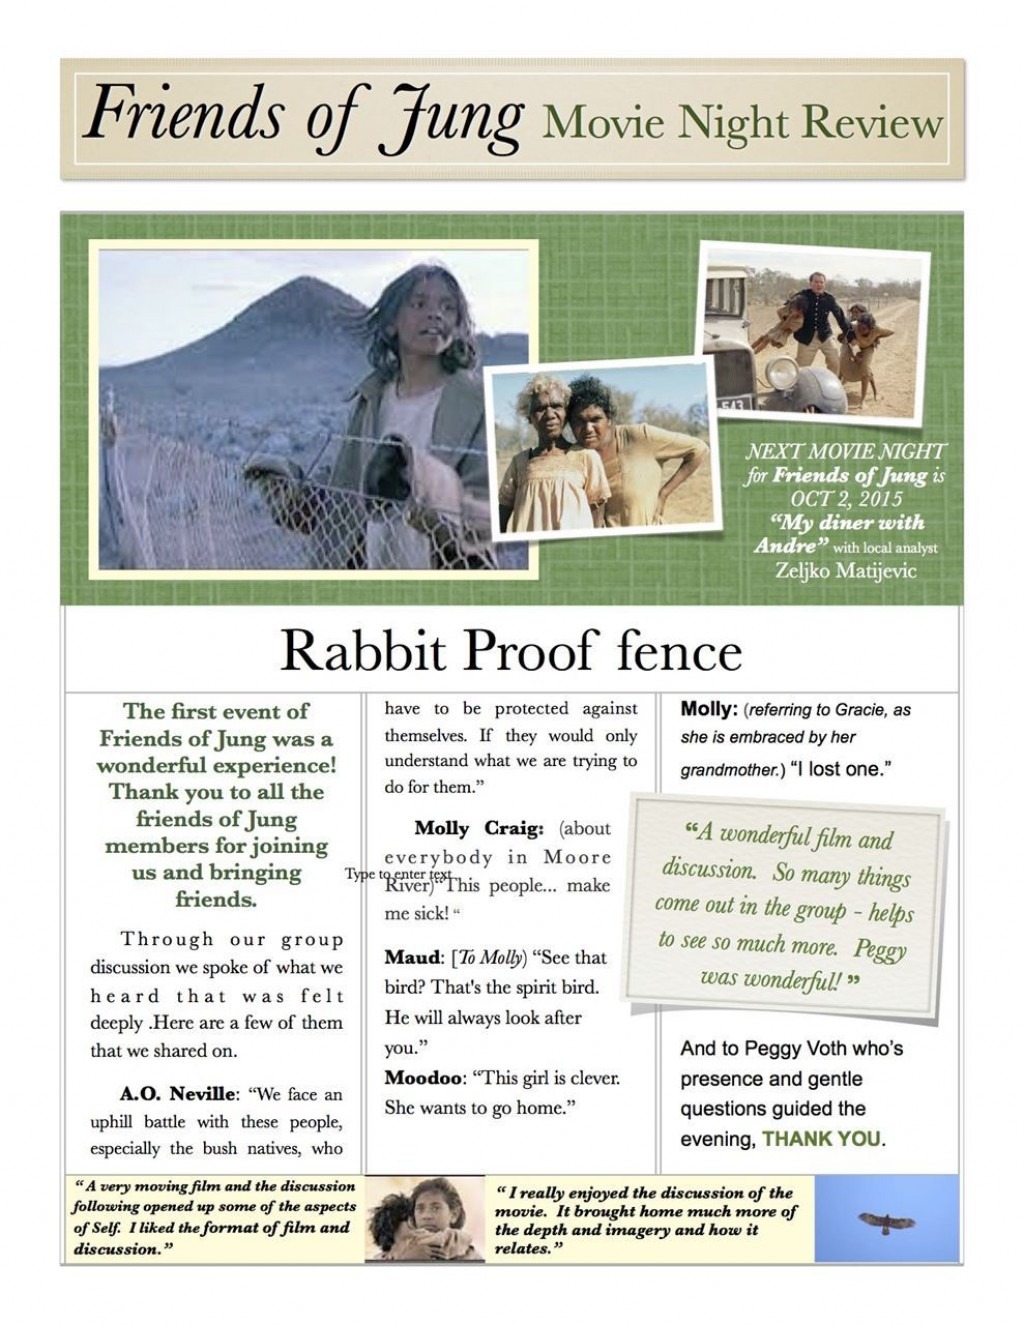 005 Essay Example Rabbit Proof Fence Review Top Film Large